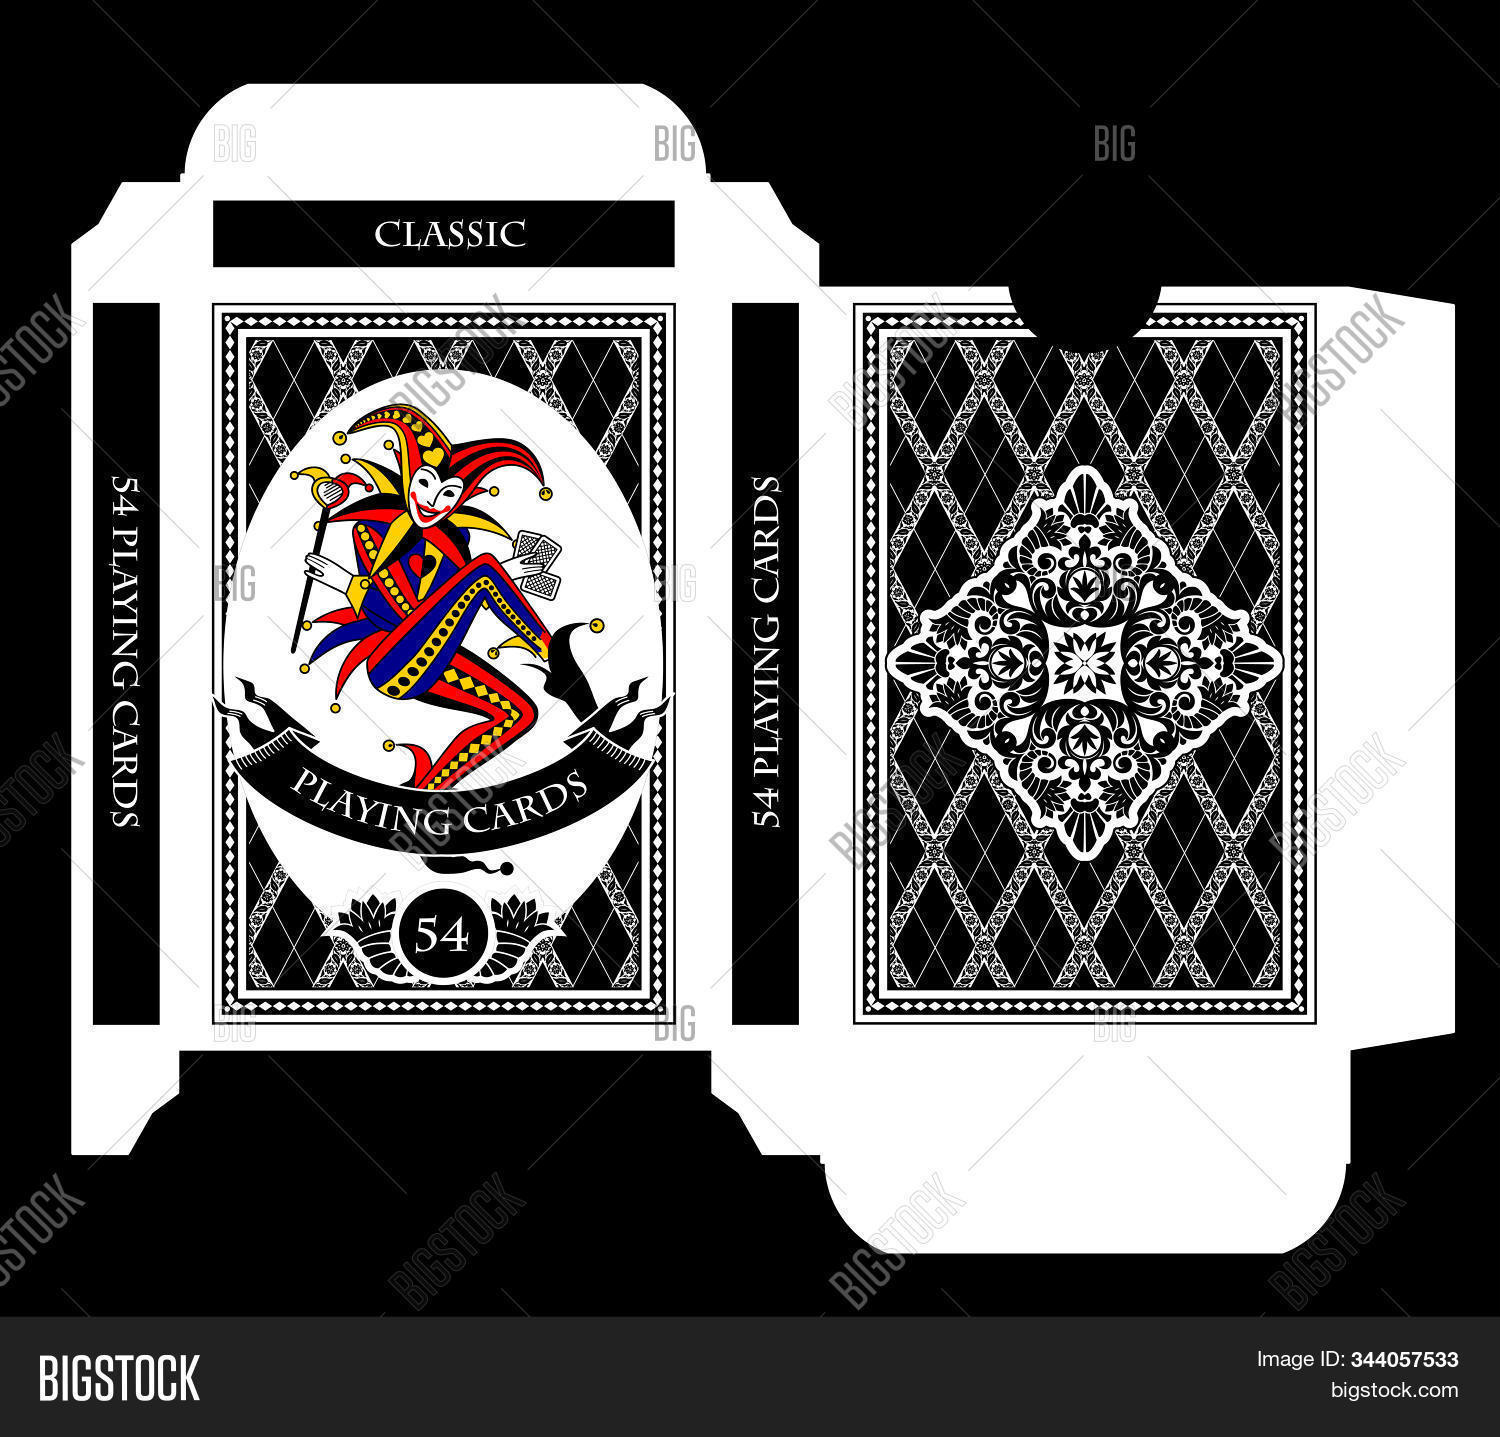 Playing Card Box Template from static1.bigstockphoto.com